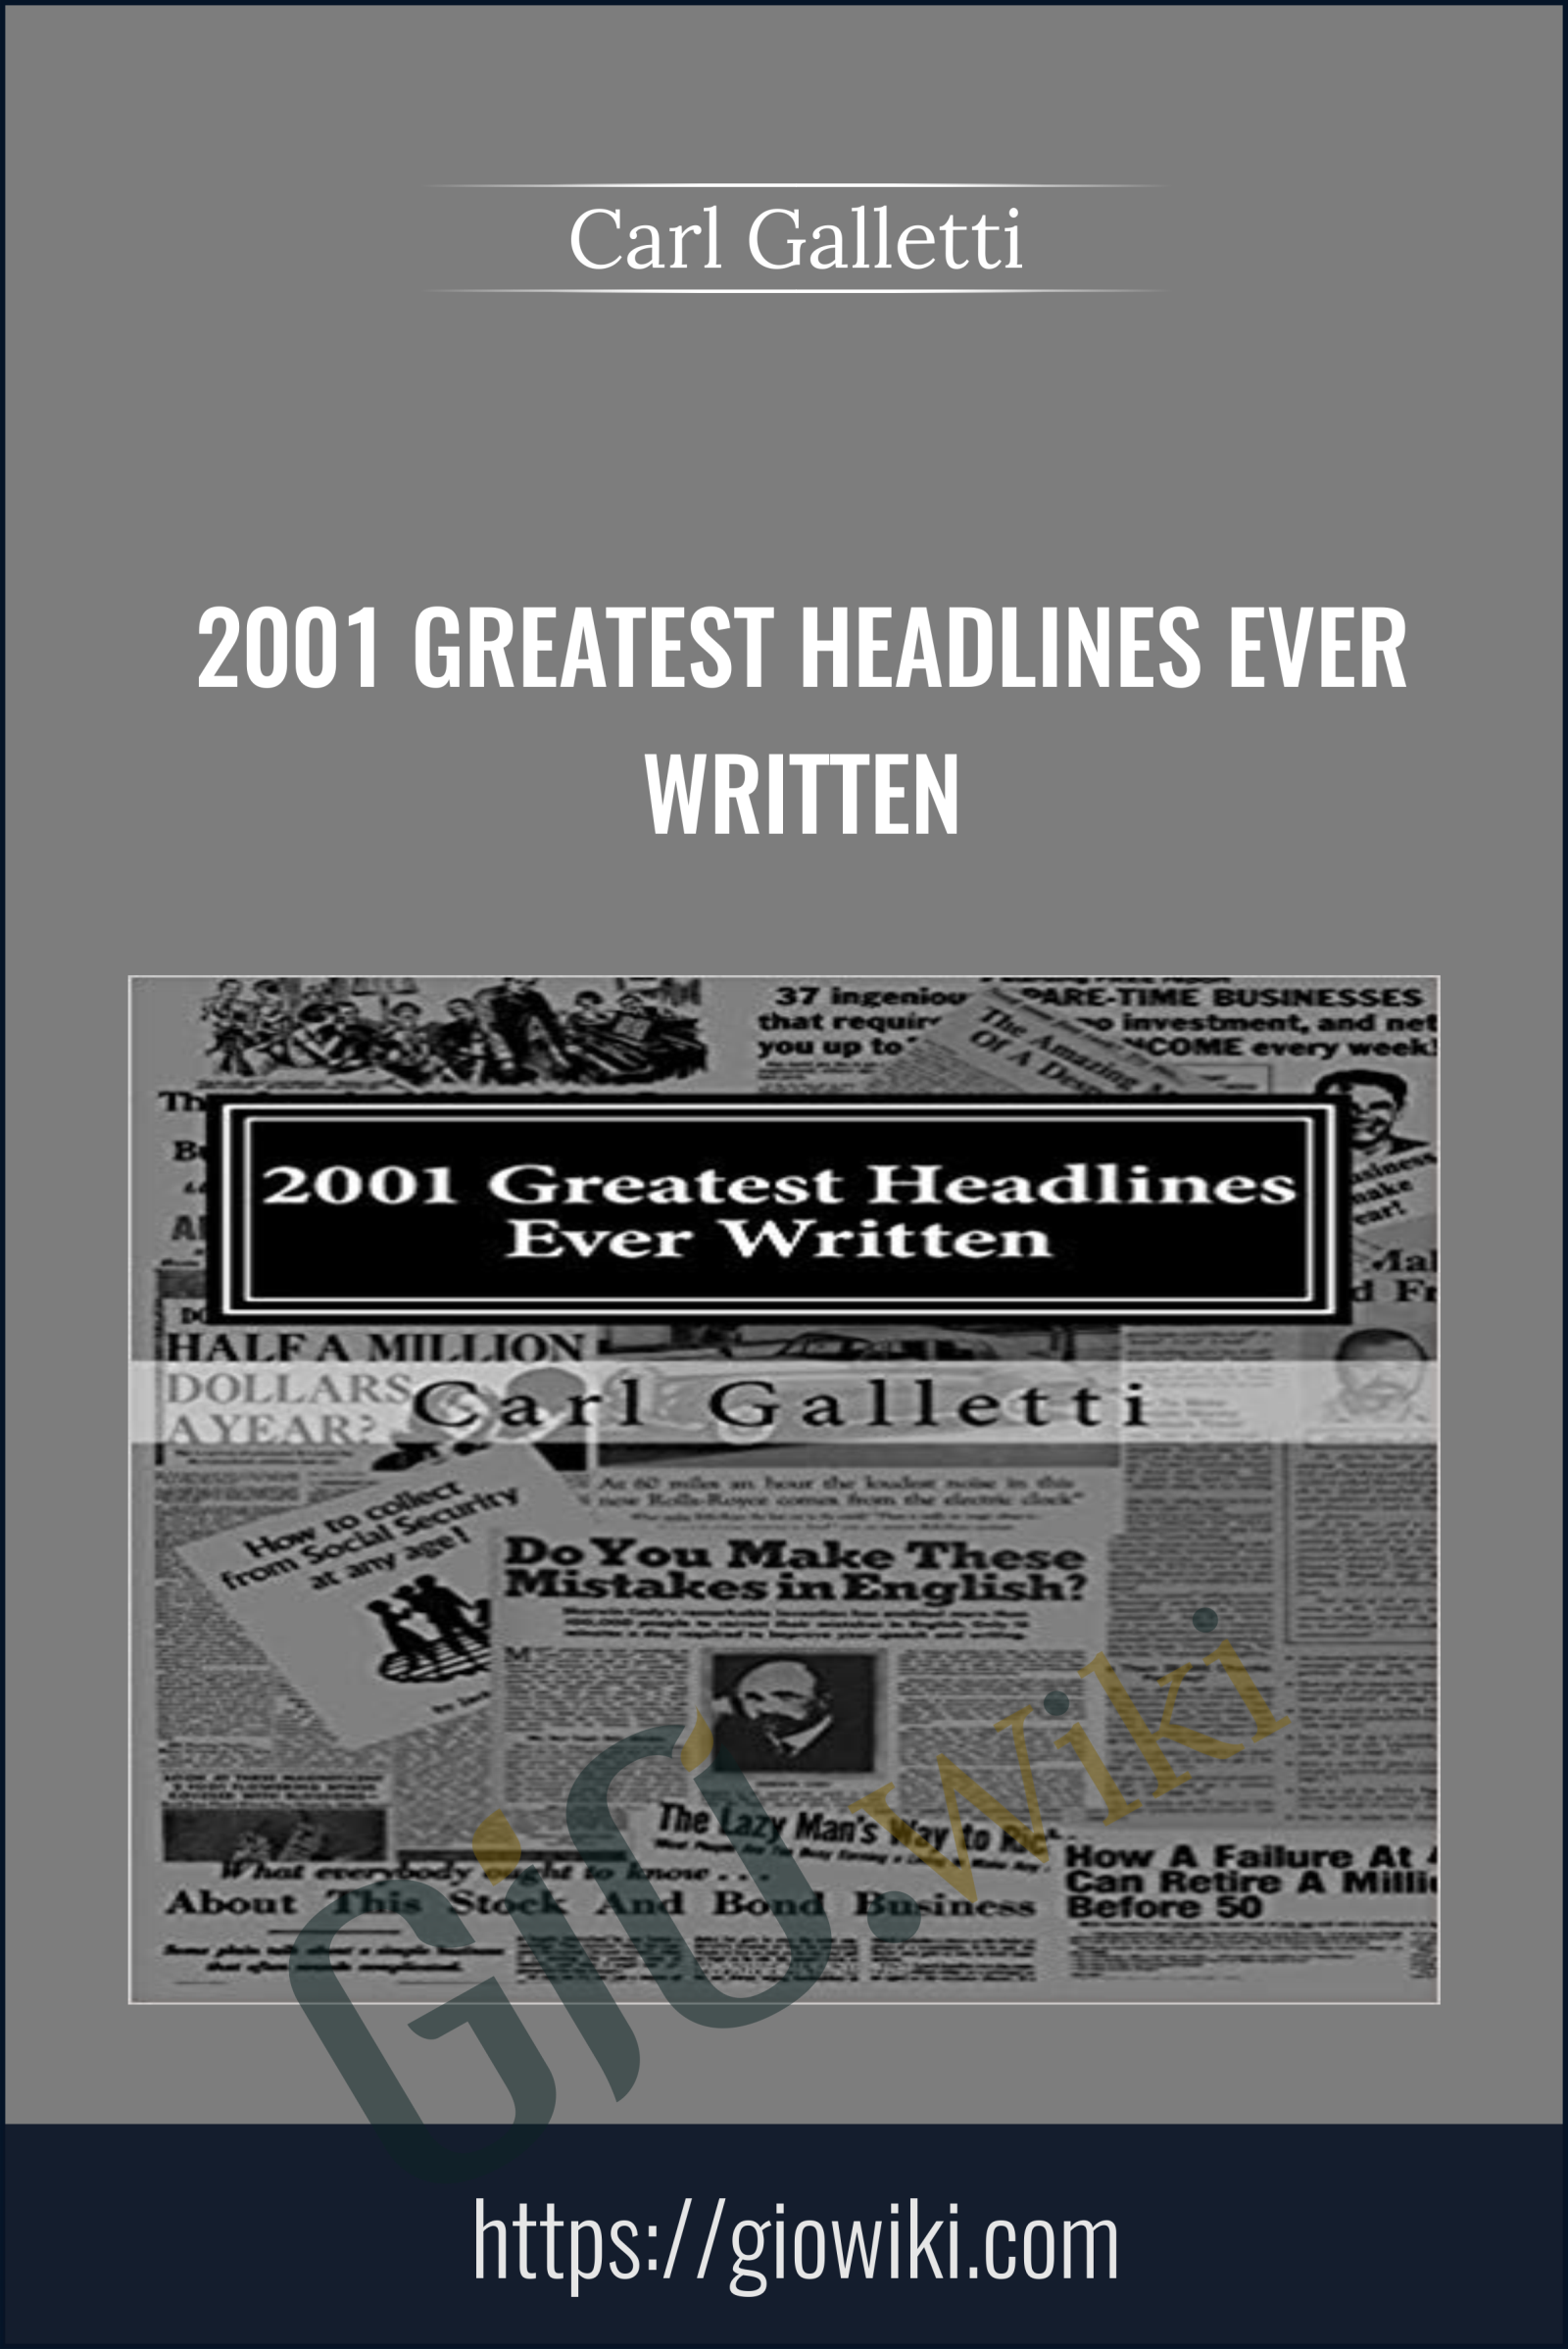 2001 Greatest Headlines Ever Written - Carl Galletti